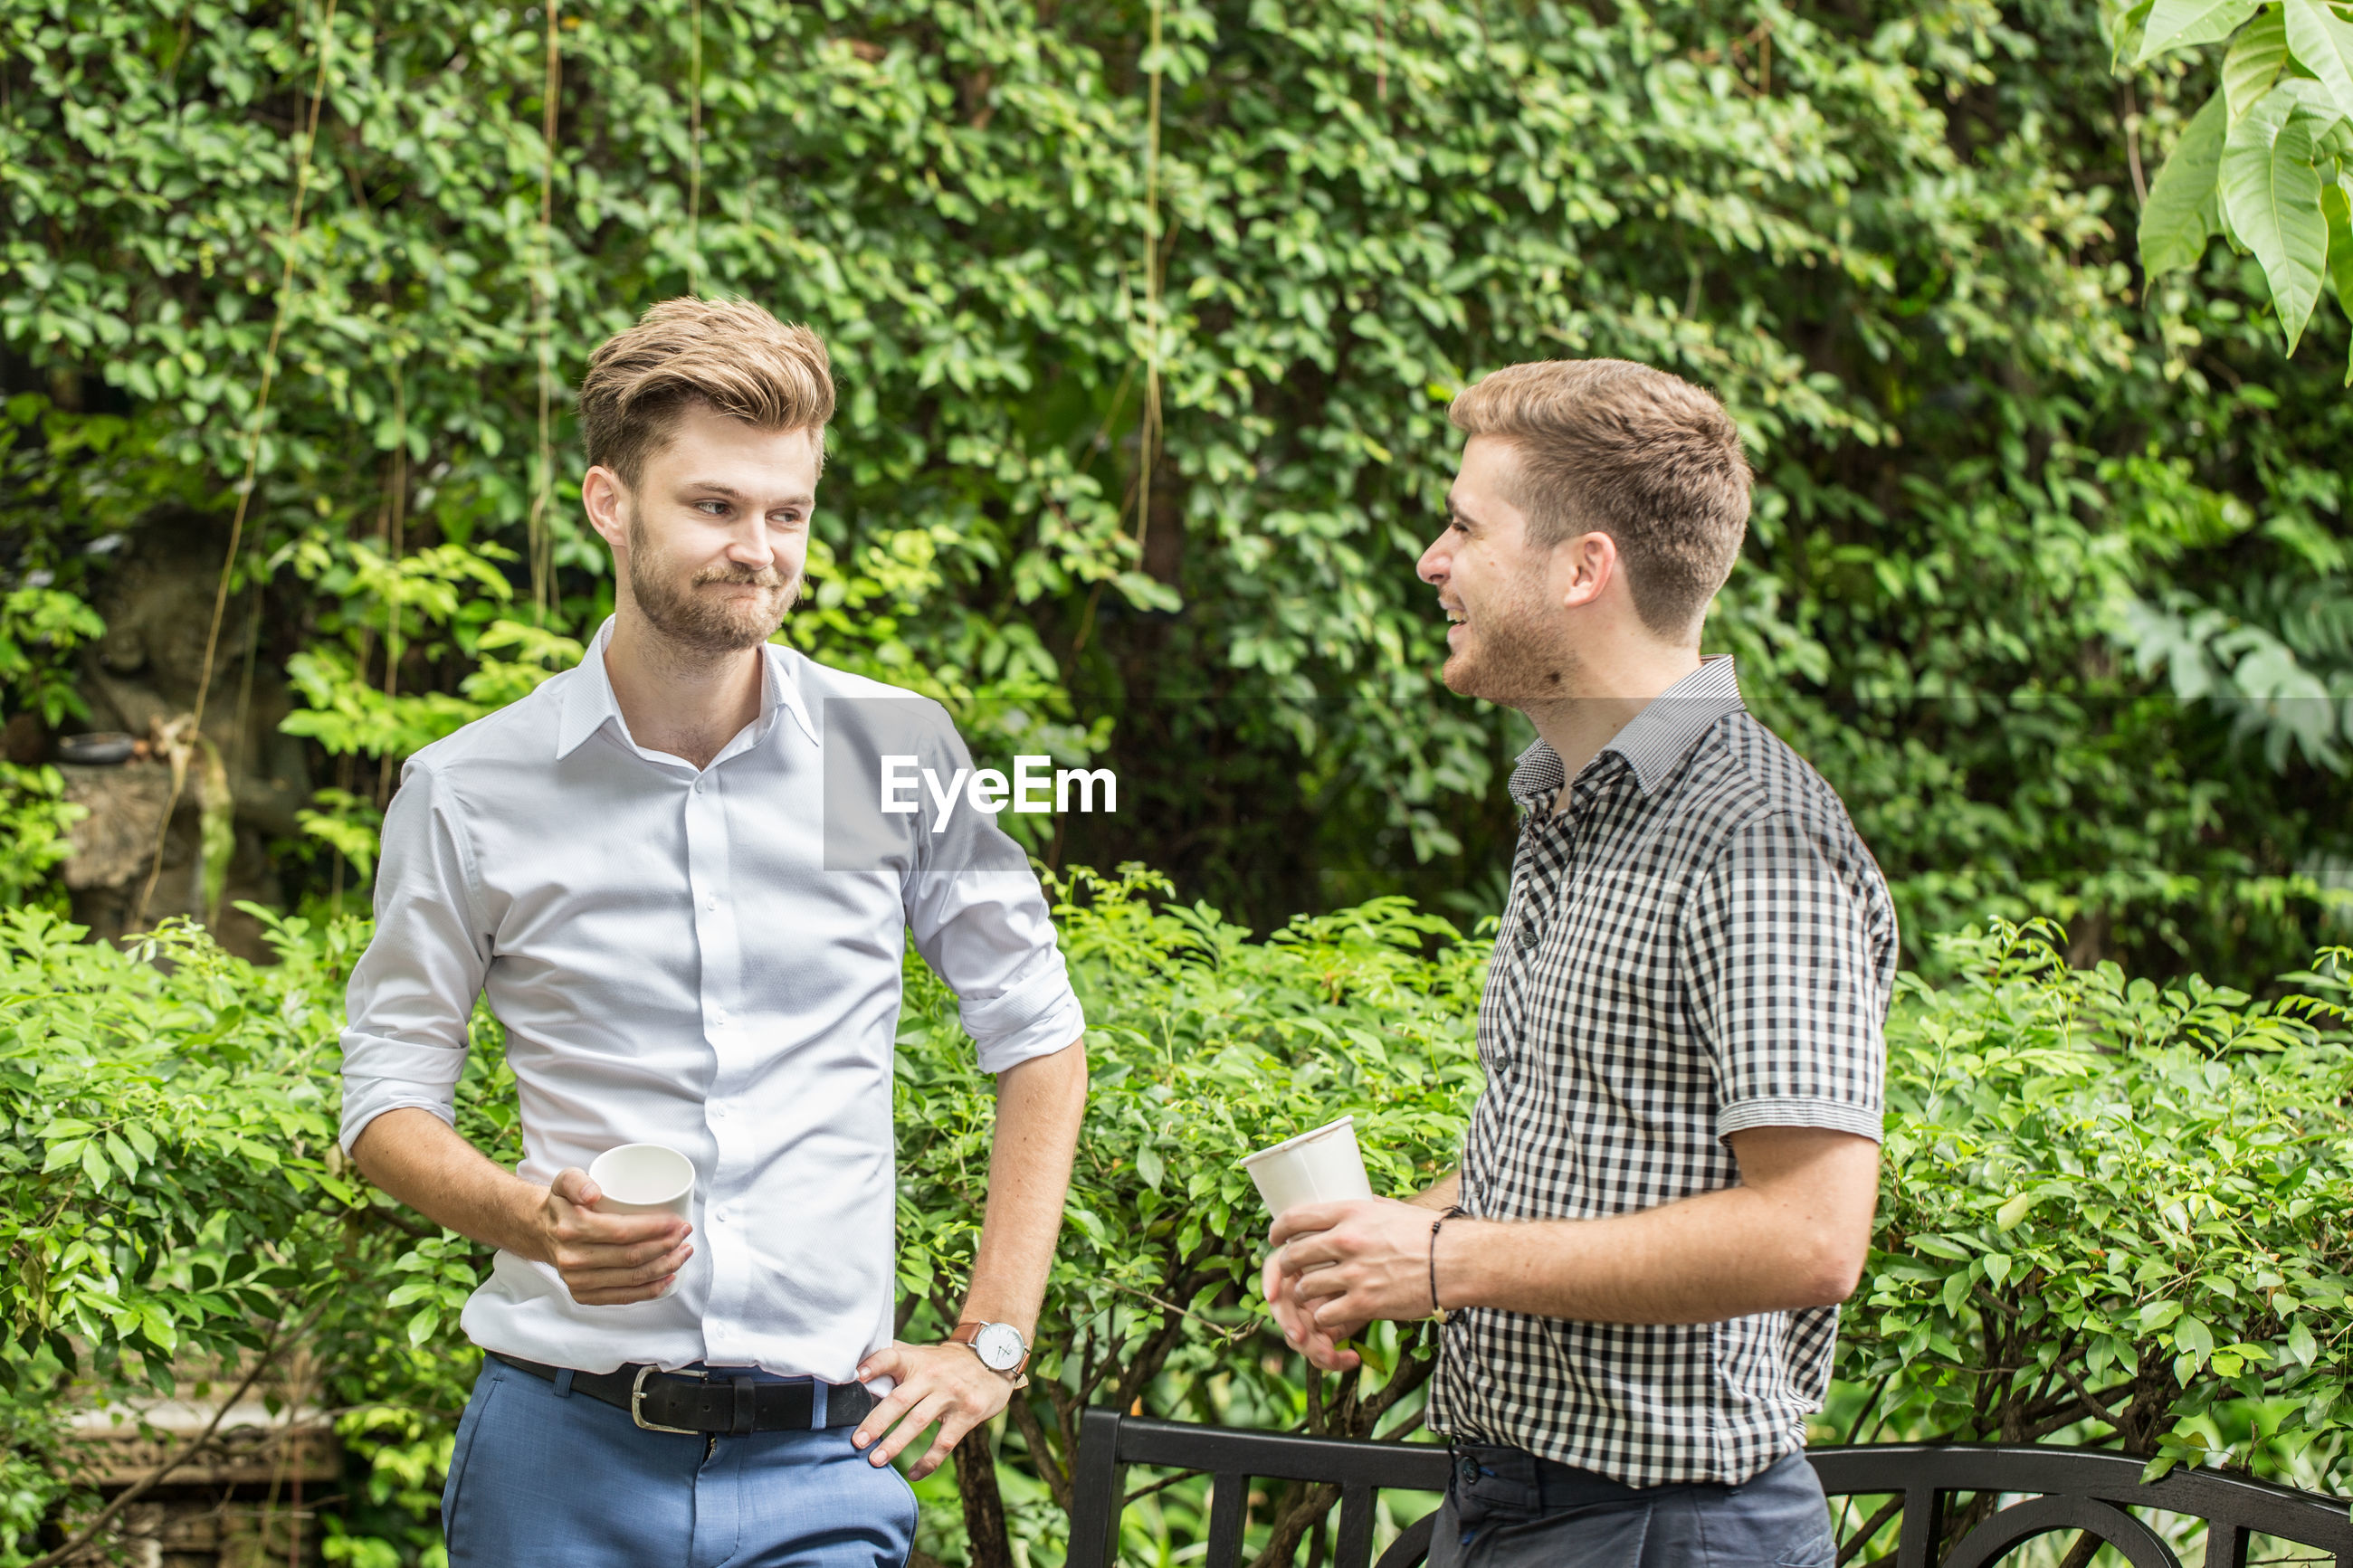 Smiling men holding cups while standing against plants at park